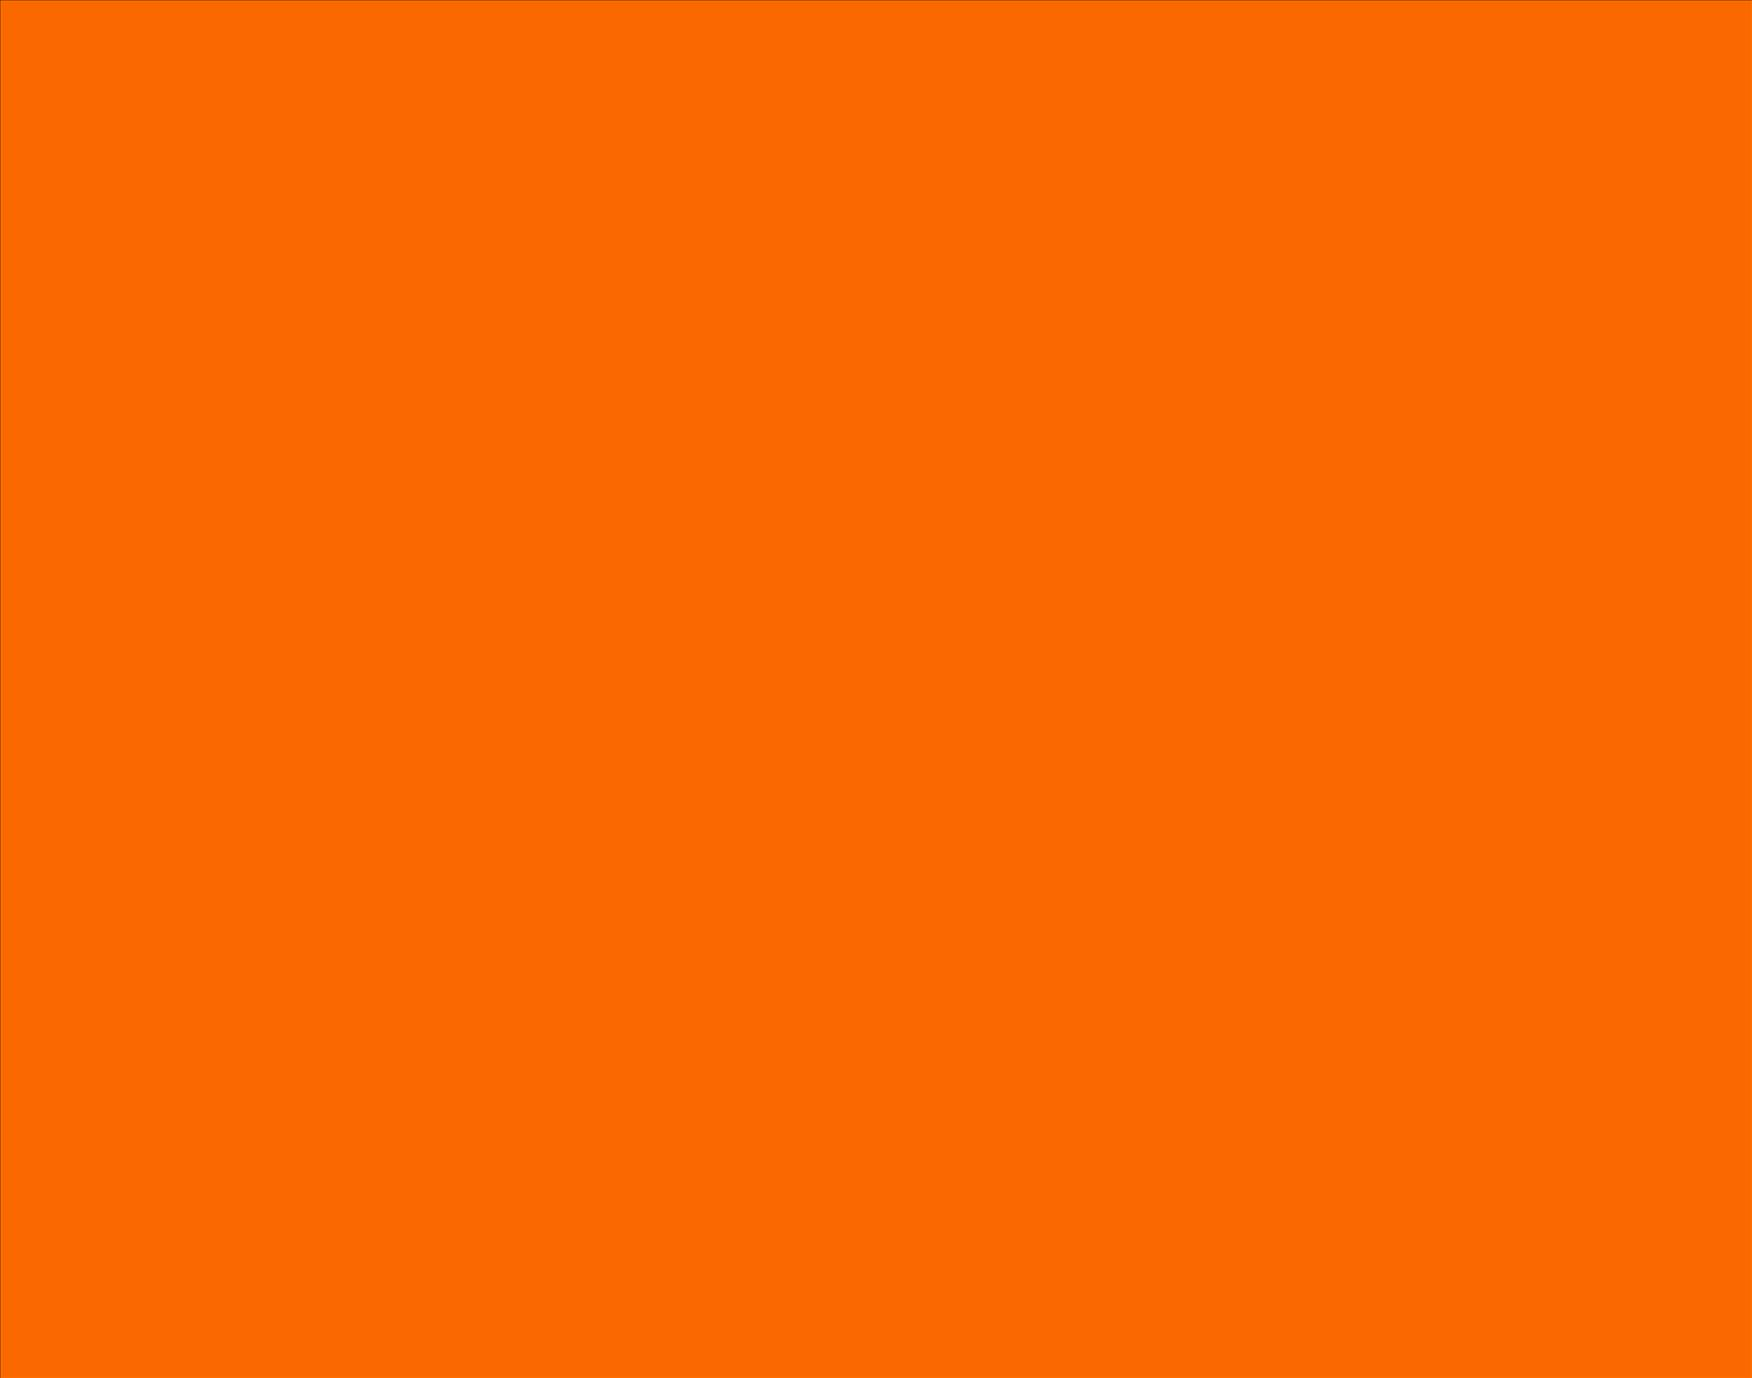 28 Shade Of Orange Orange Shade By Wanizame On